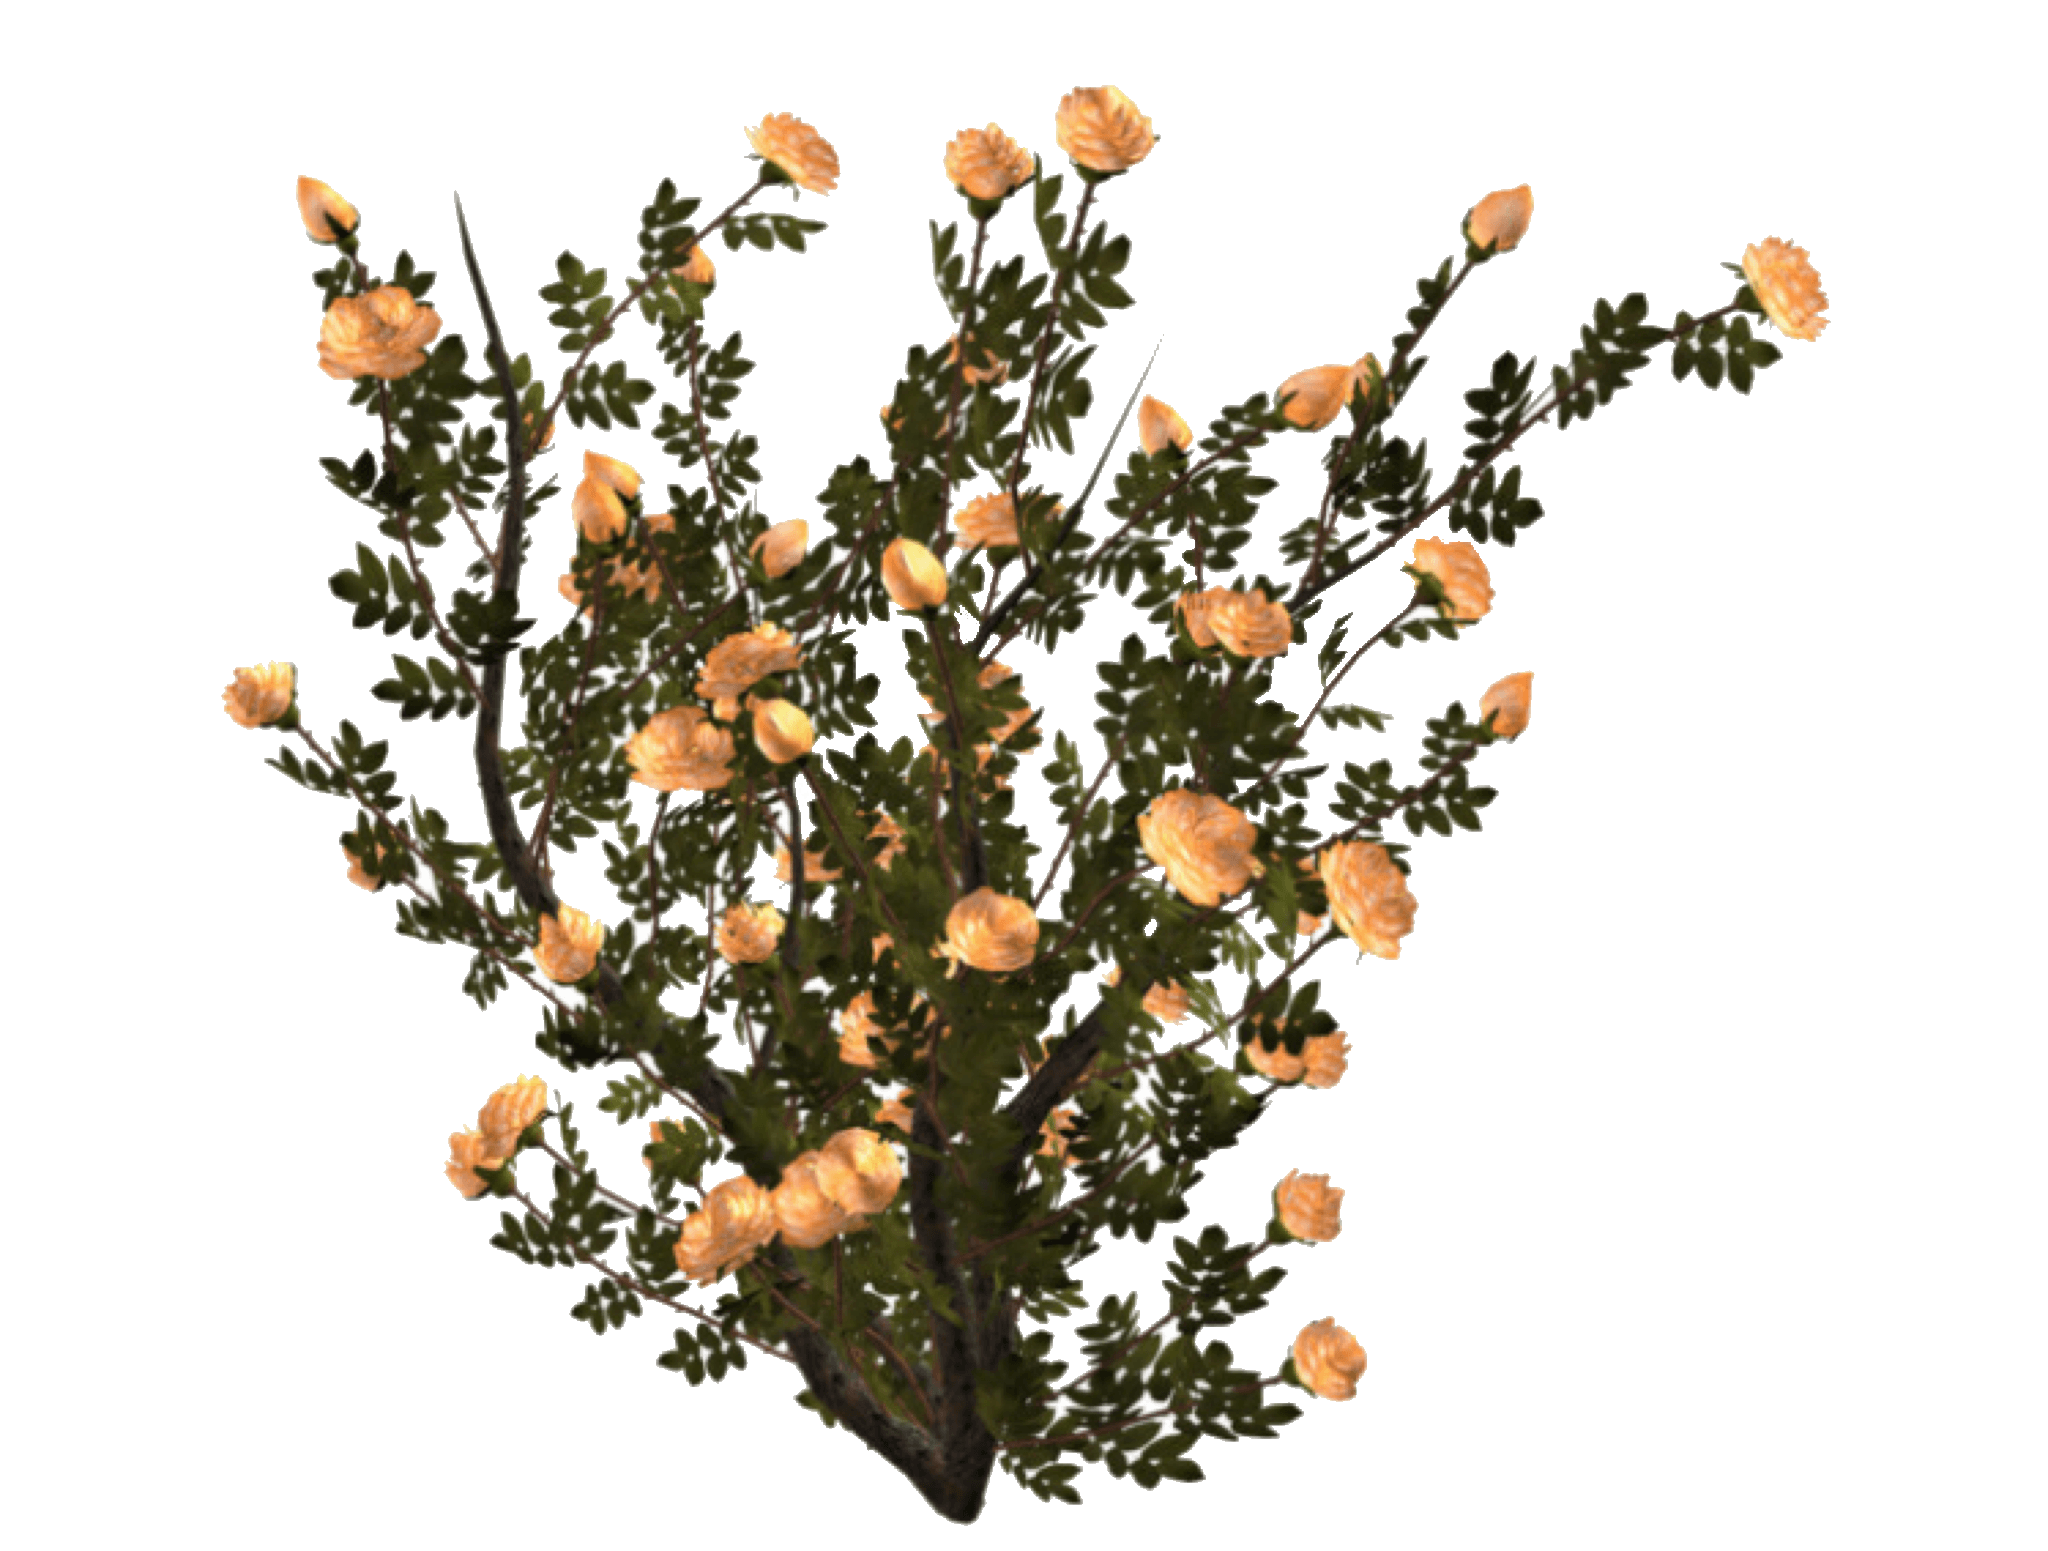 plant / polyvore | polyvore pngs in 2018 | Pinterest | Polyvore, Mood boards and Mood